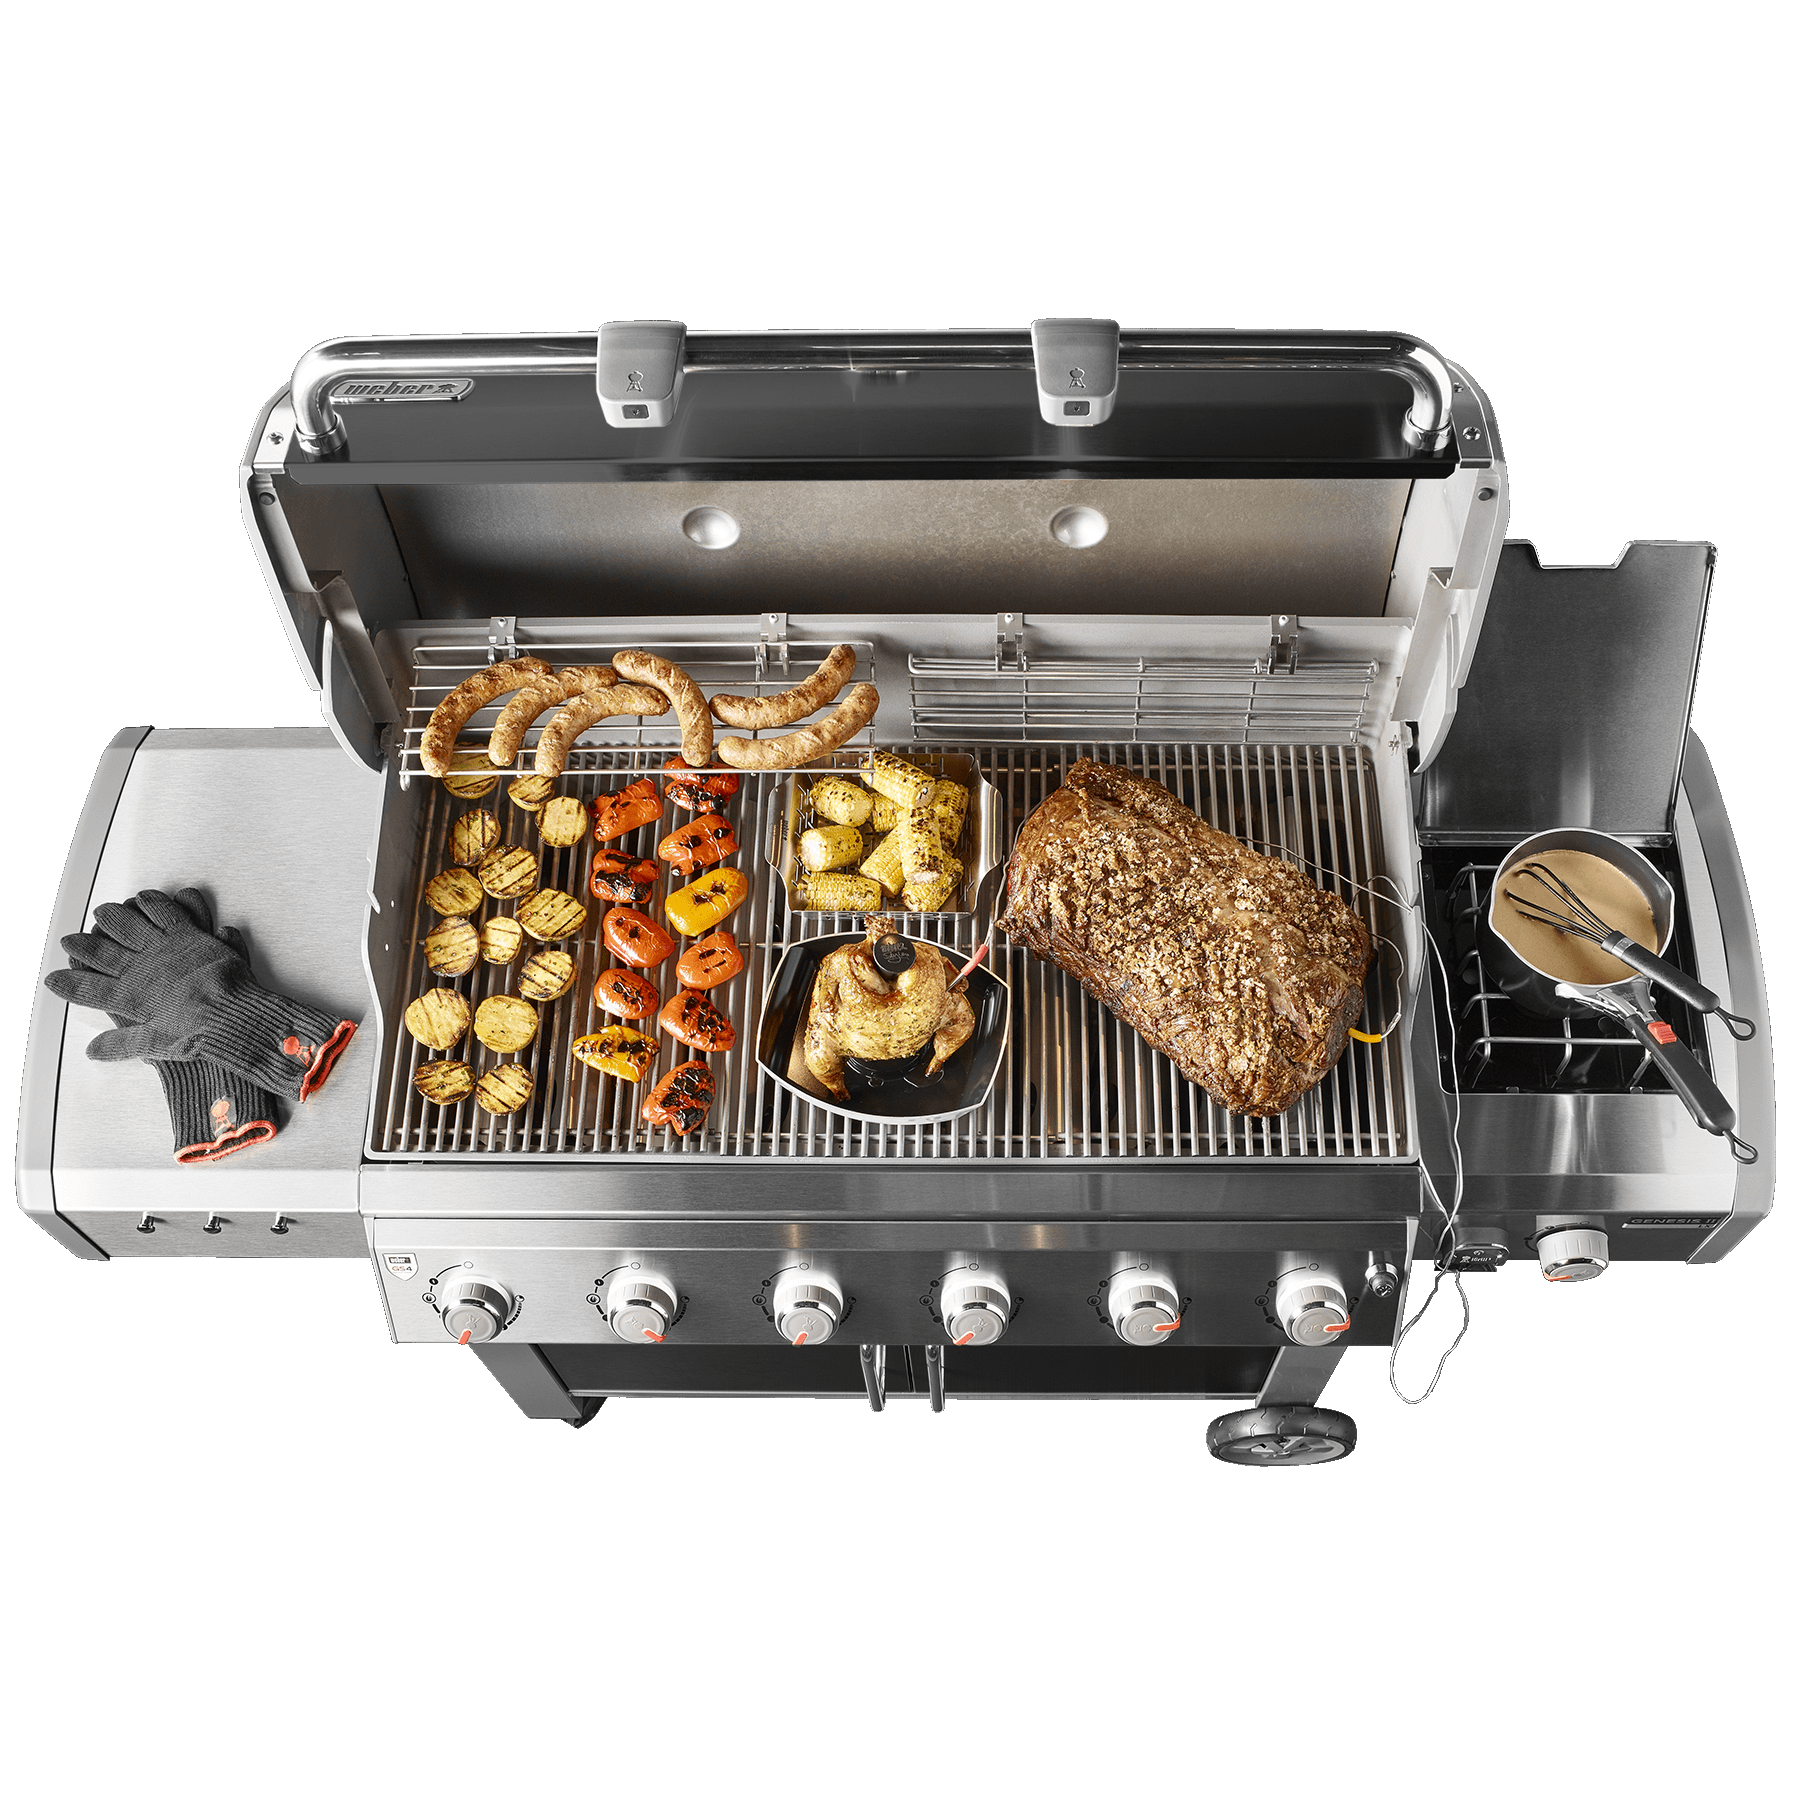 Genesis® II LX E-640 GBS Gas Barbecue